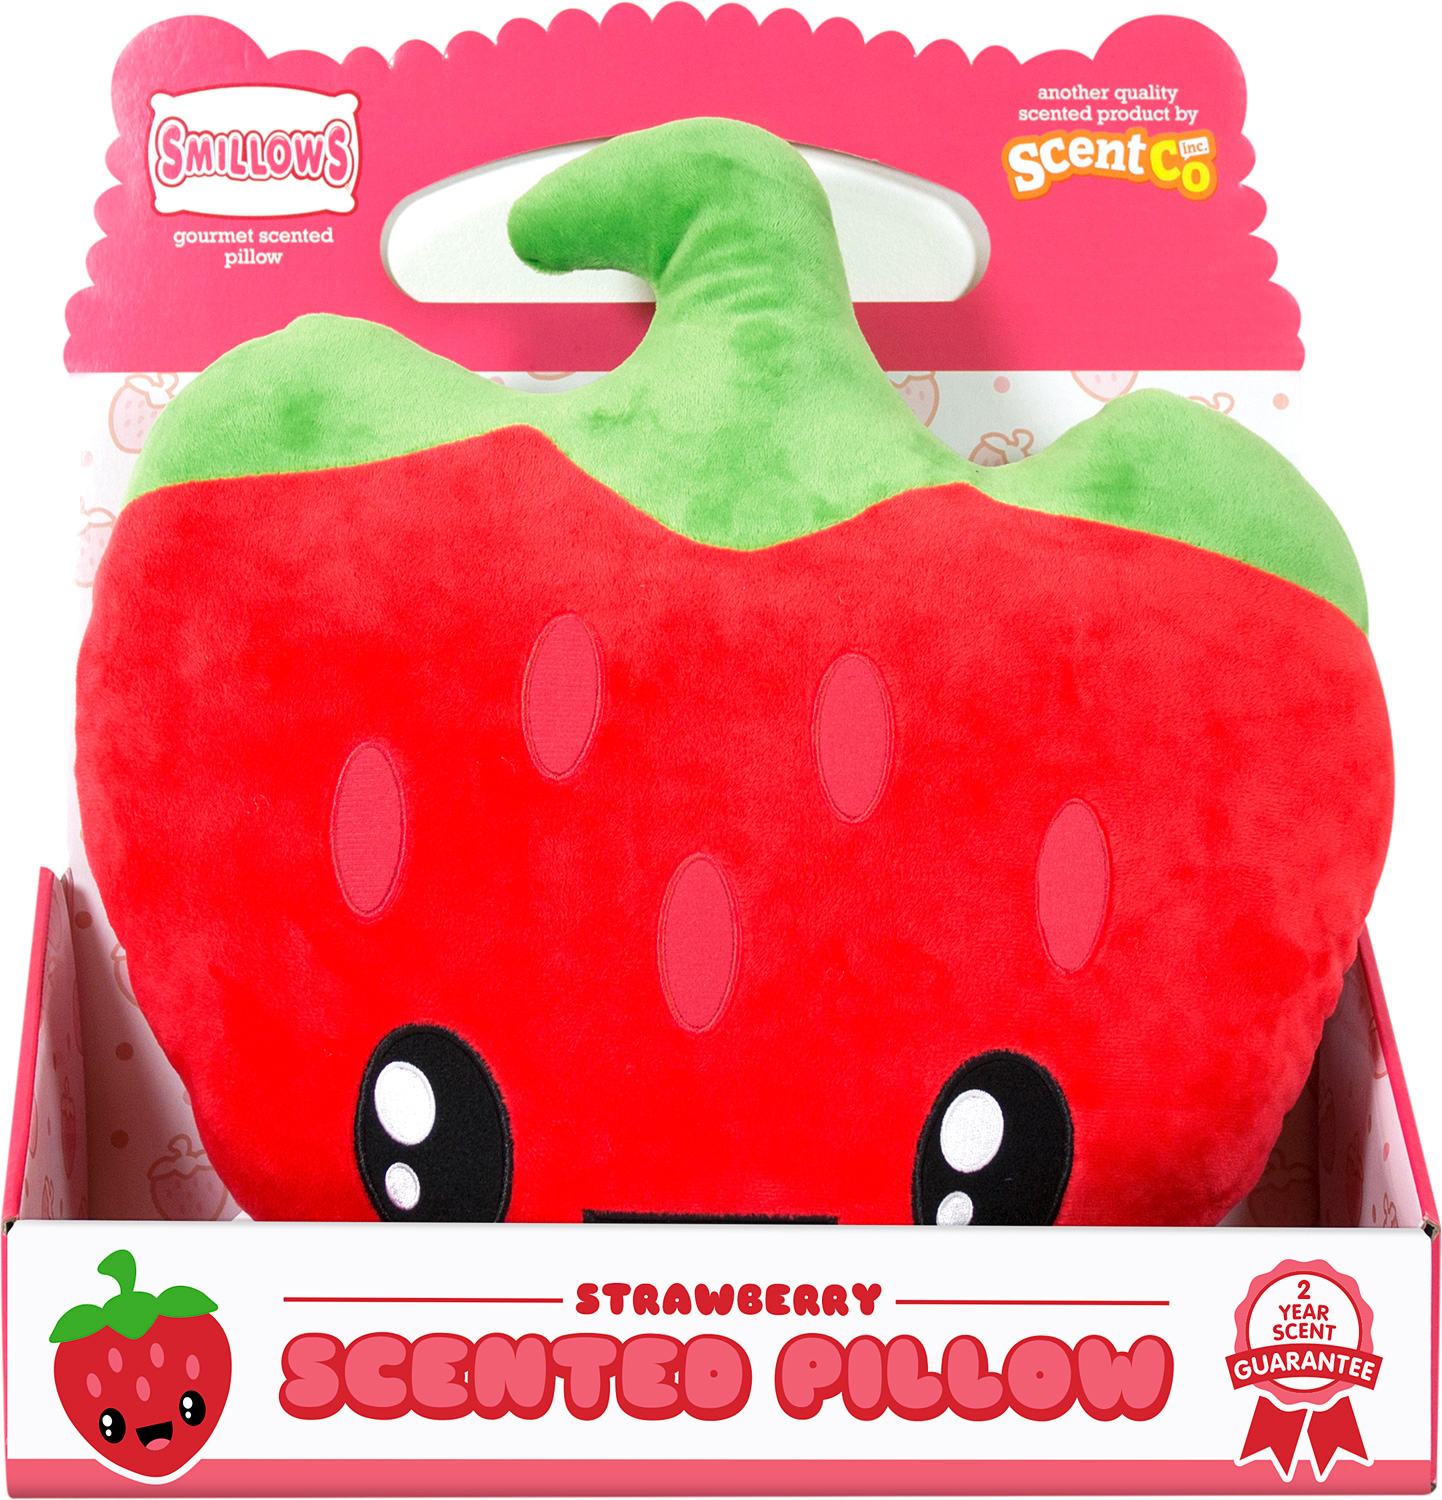 Strawberry Smillow